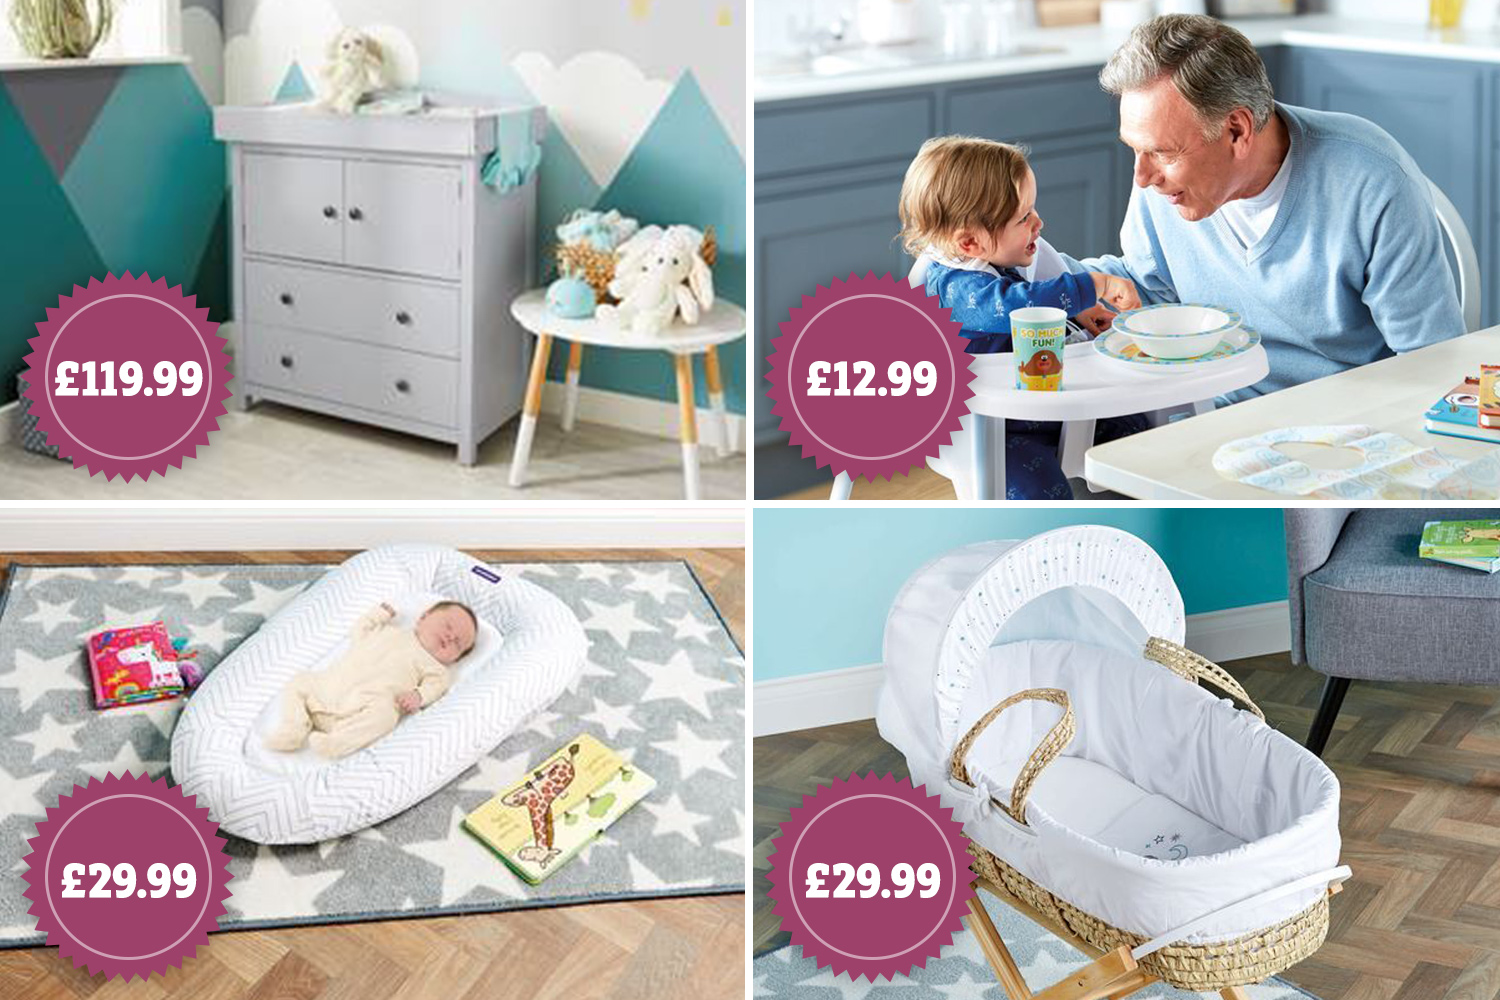 We've rounded up our top picks from Aldi's baby sale